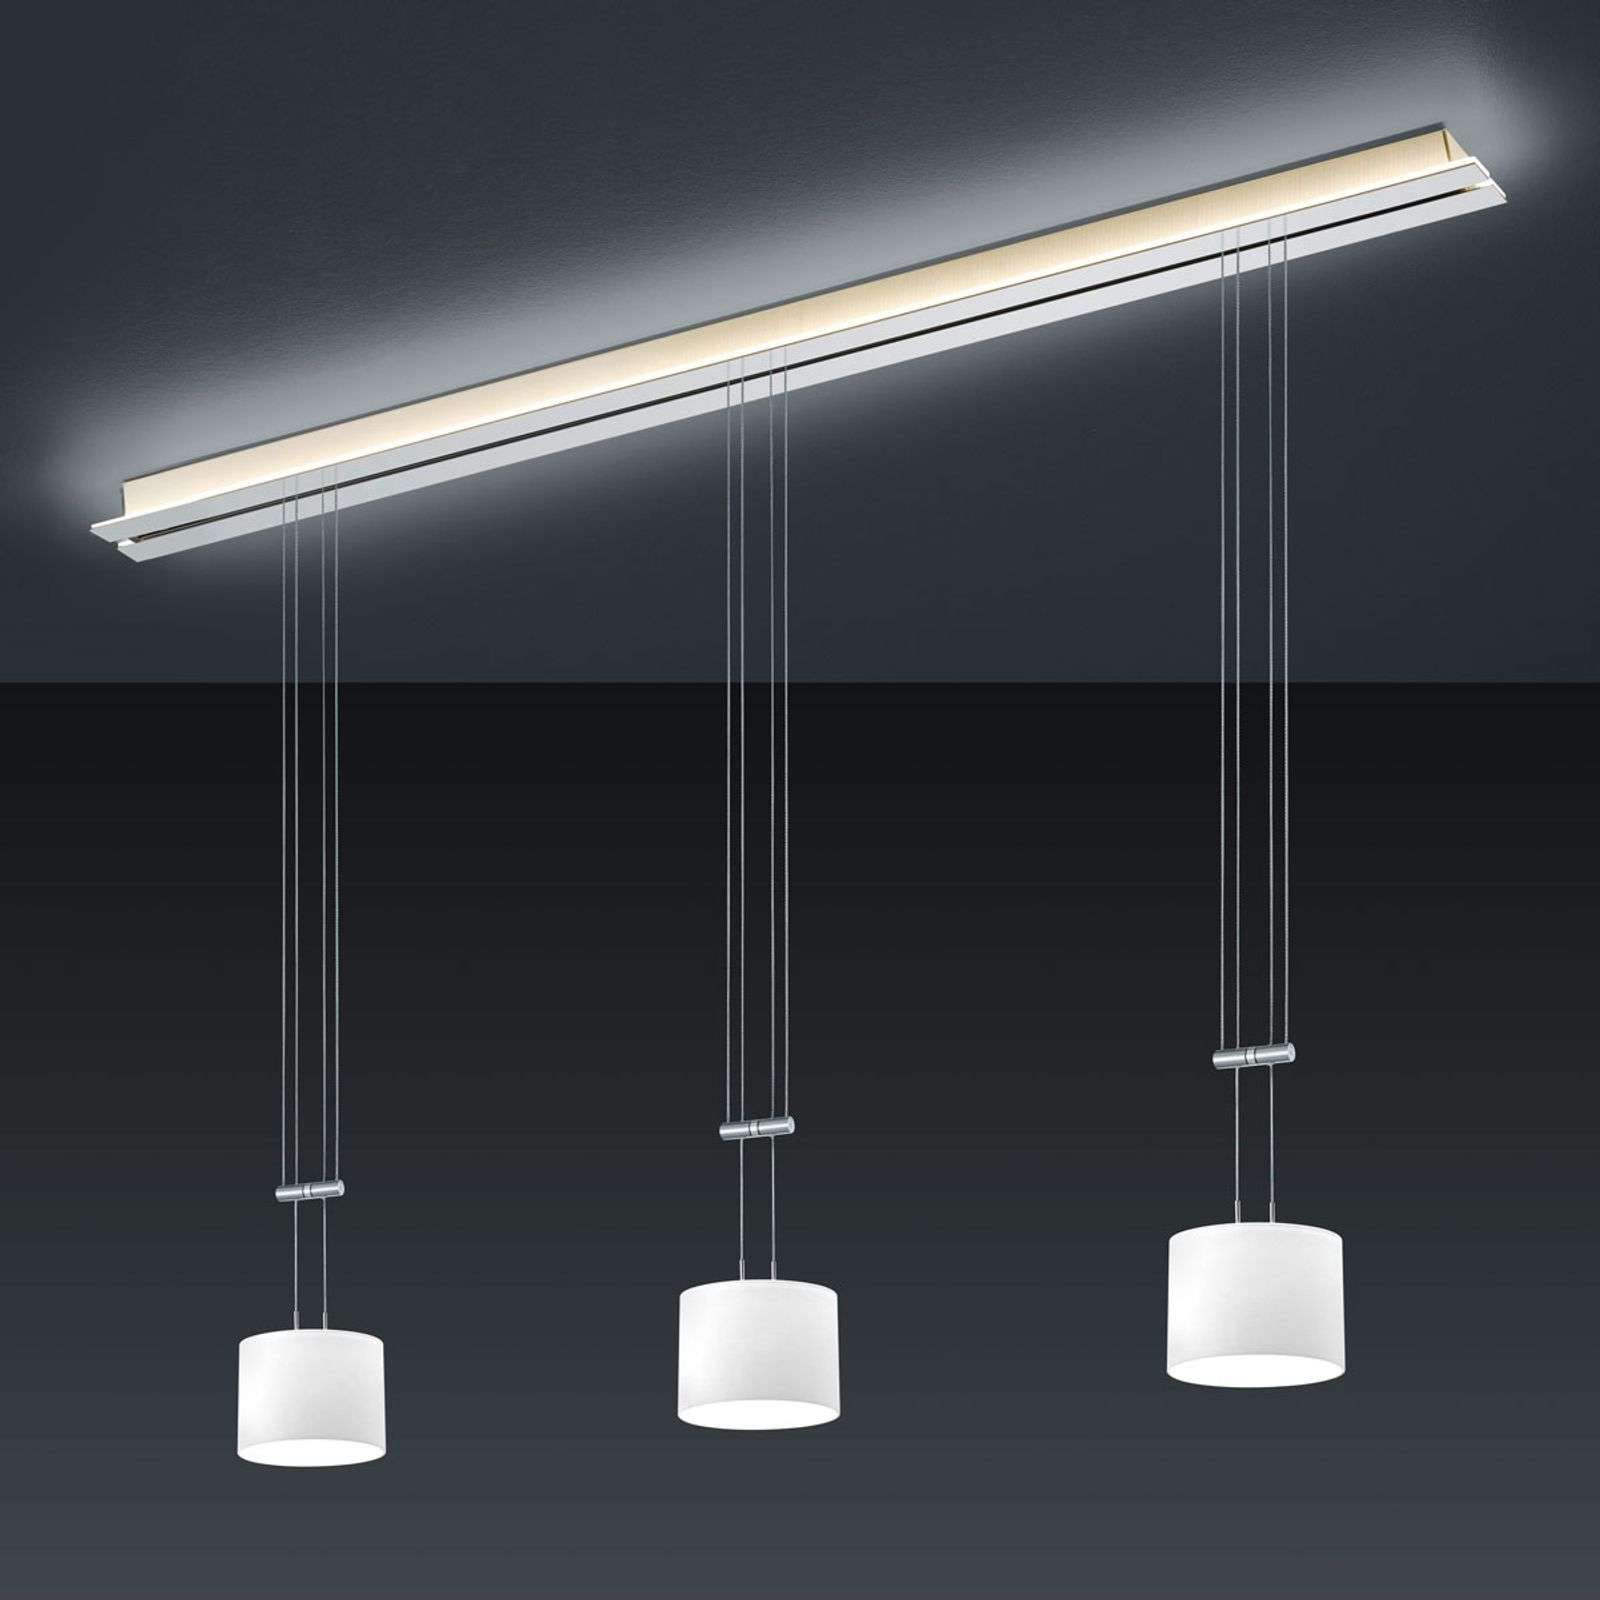 BANKAMP Strada Gracia suspension 3 lampes, 155 cm